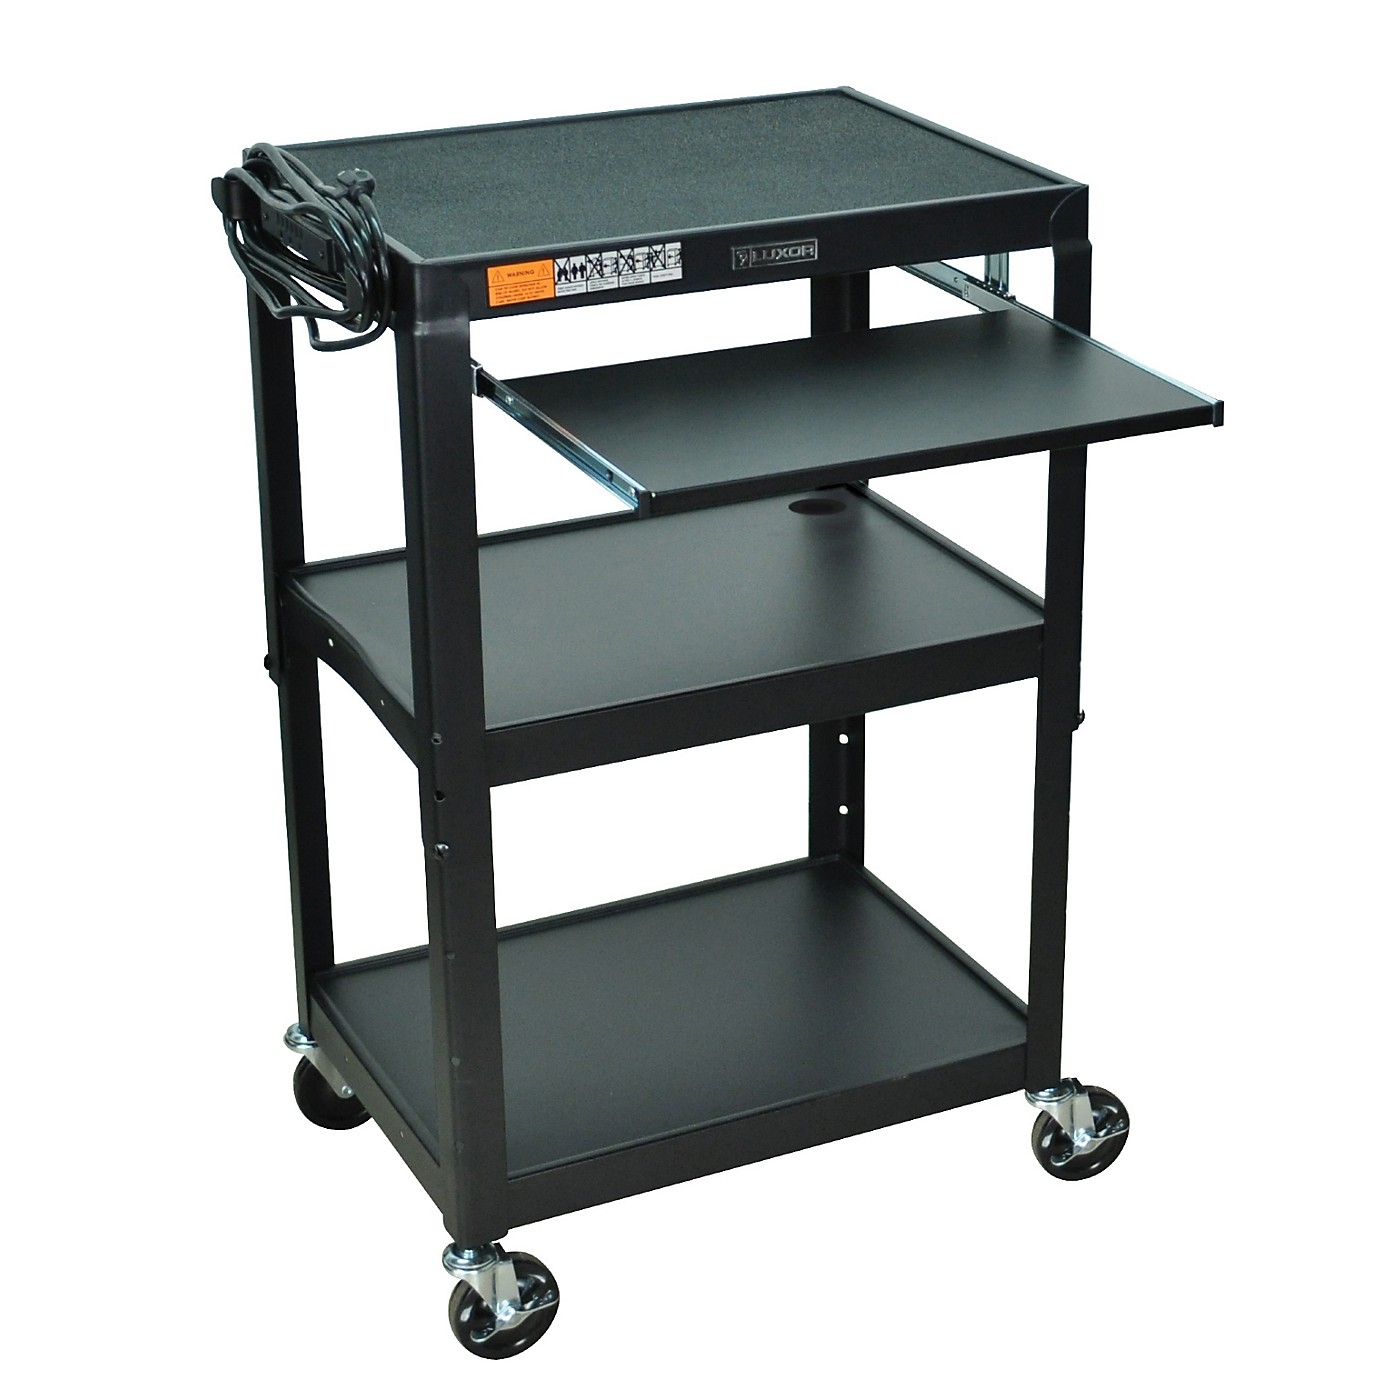 H. Wilson Adjustable Height Cart with Keyboard Tray thumbnail